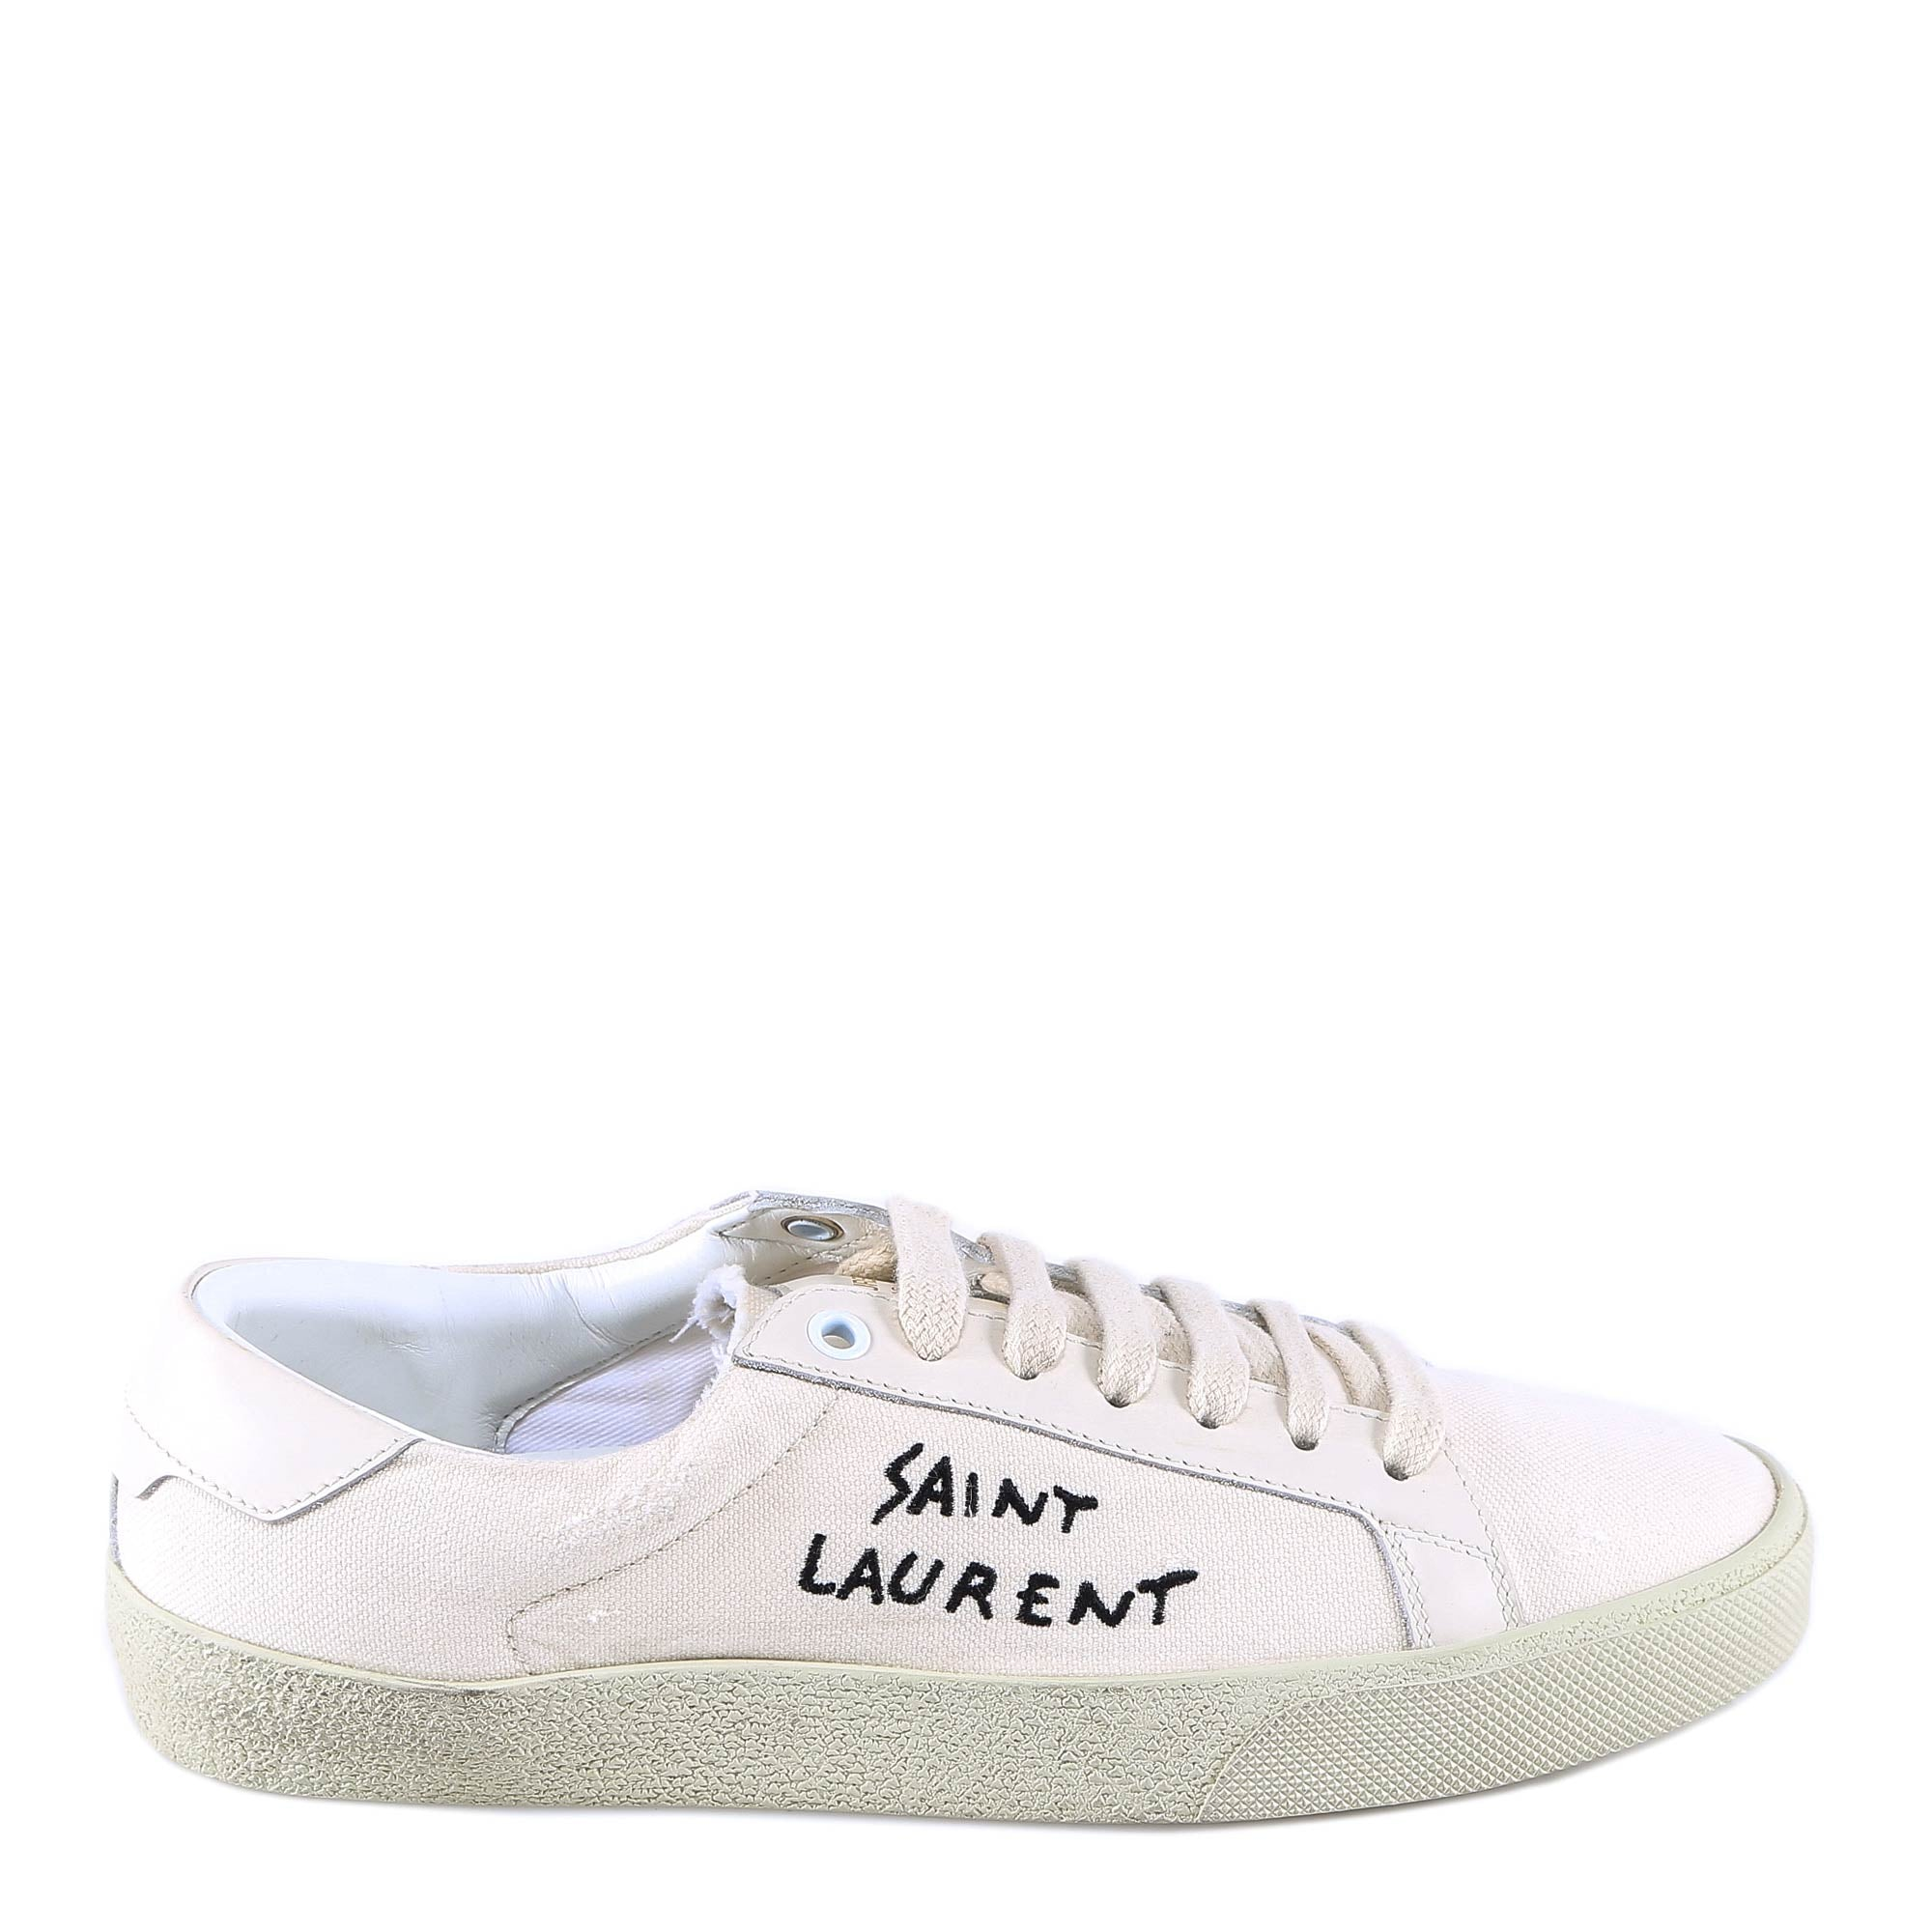 SAINT LAURENT COURT CLASSIC SL/06 SNEAKERS